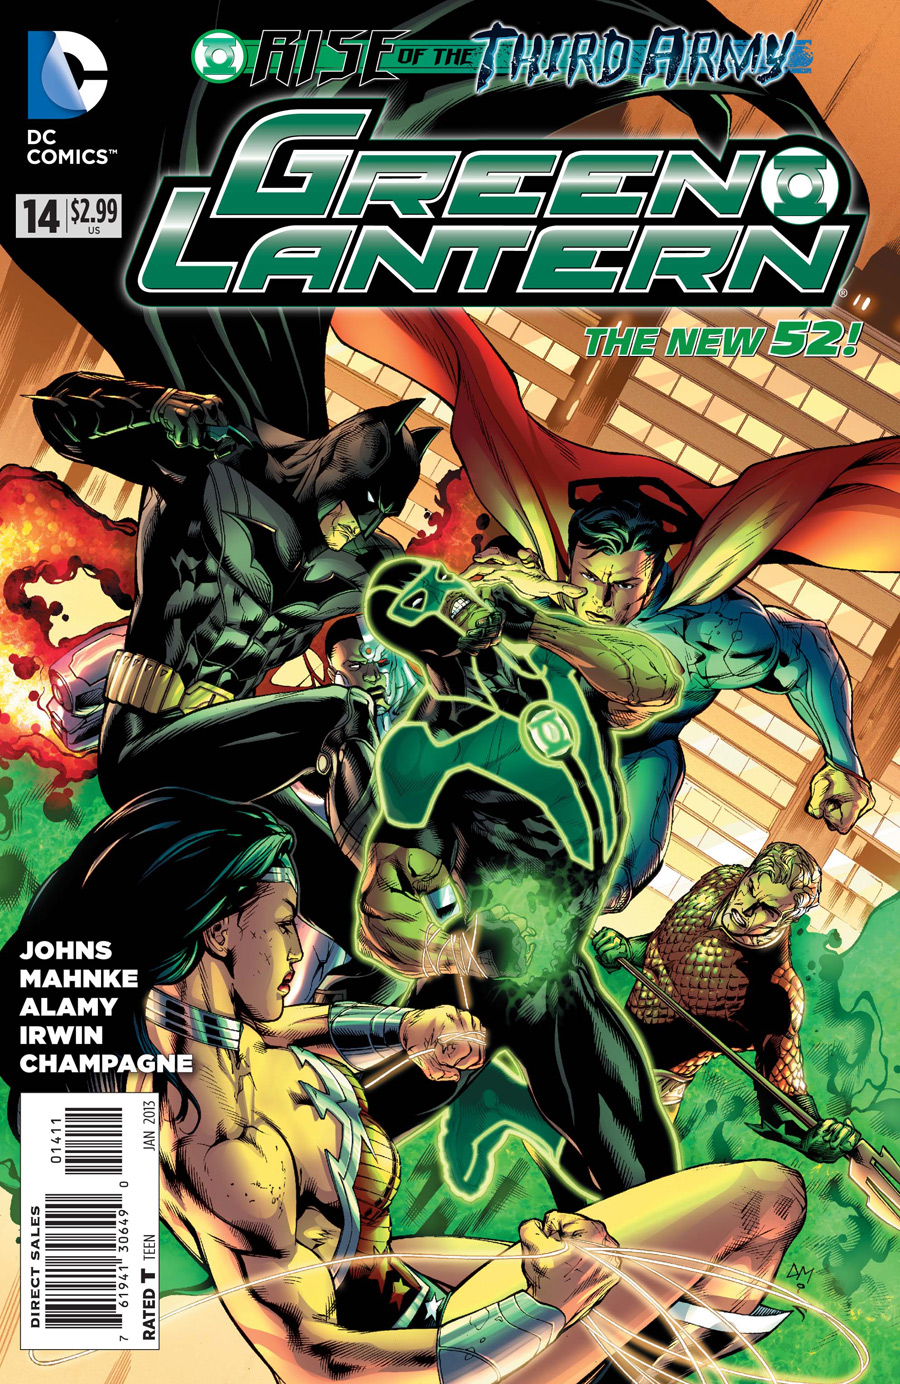 Green Lantern 14 C Green Lantern #14 Review